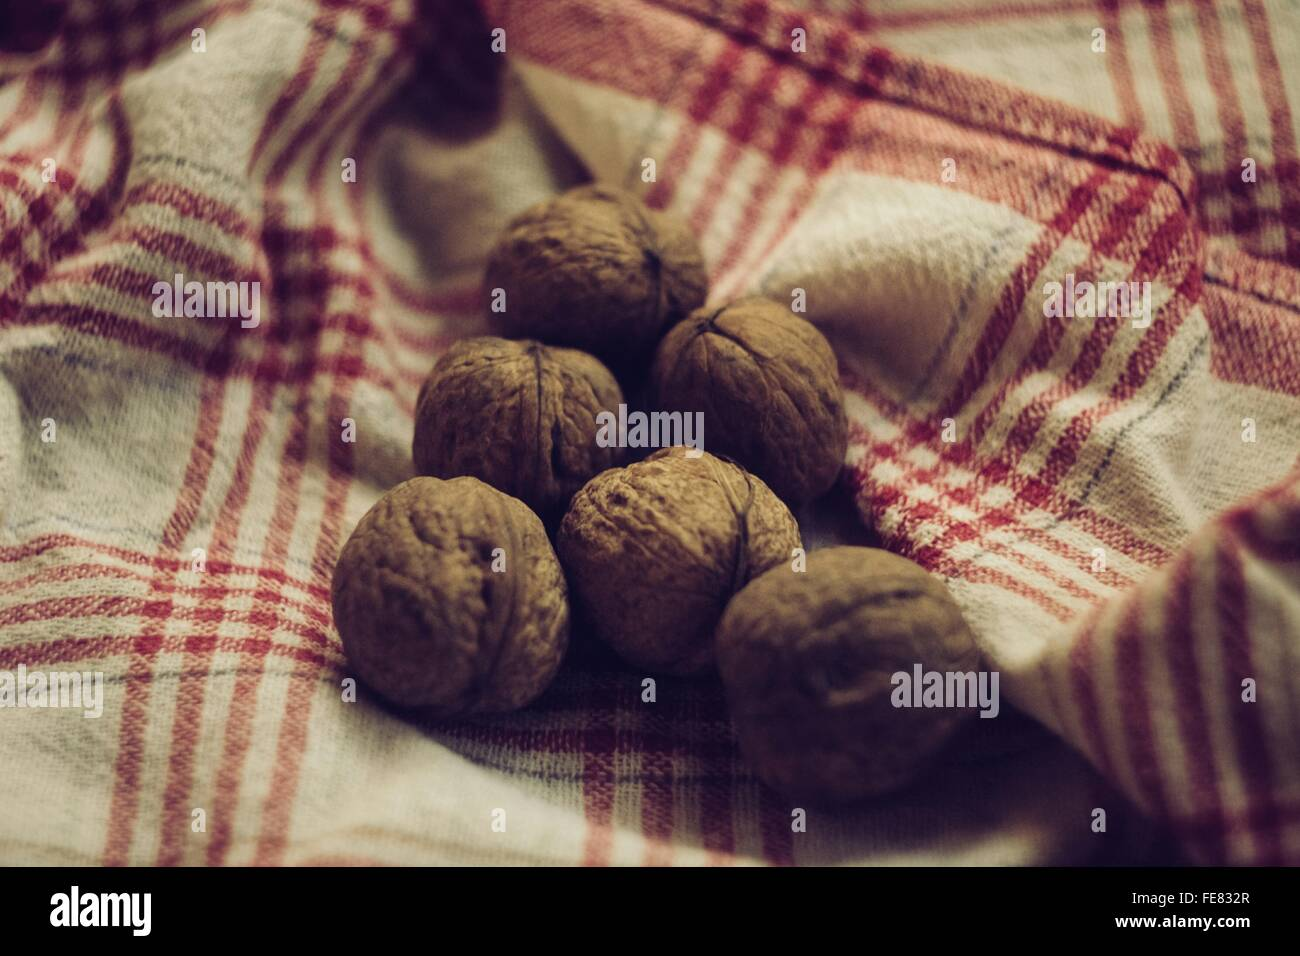 Close-Up Of Walnuts - Stock Image